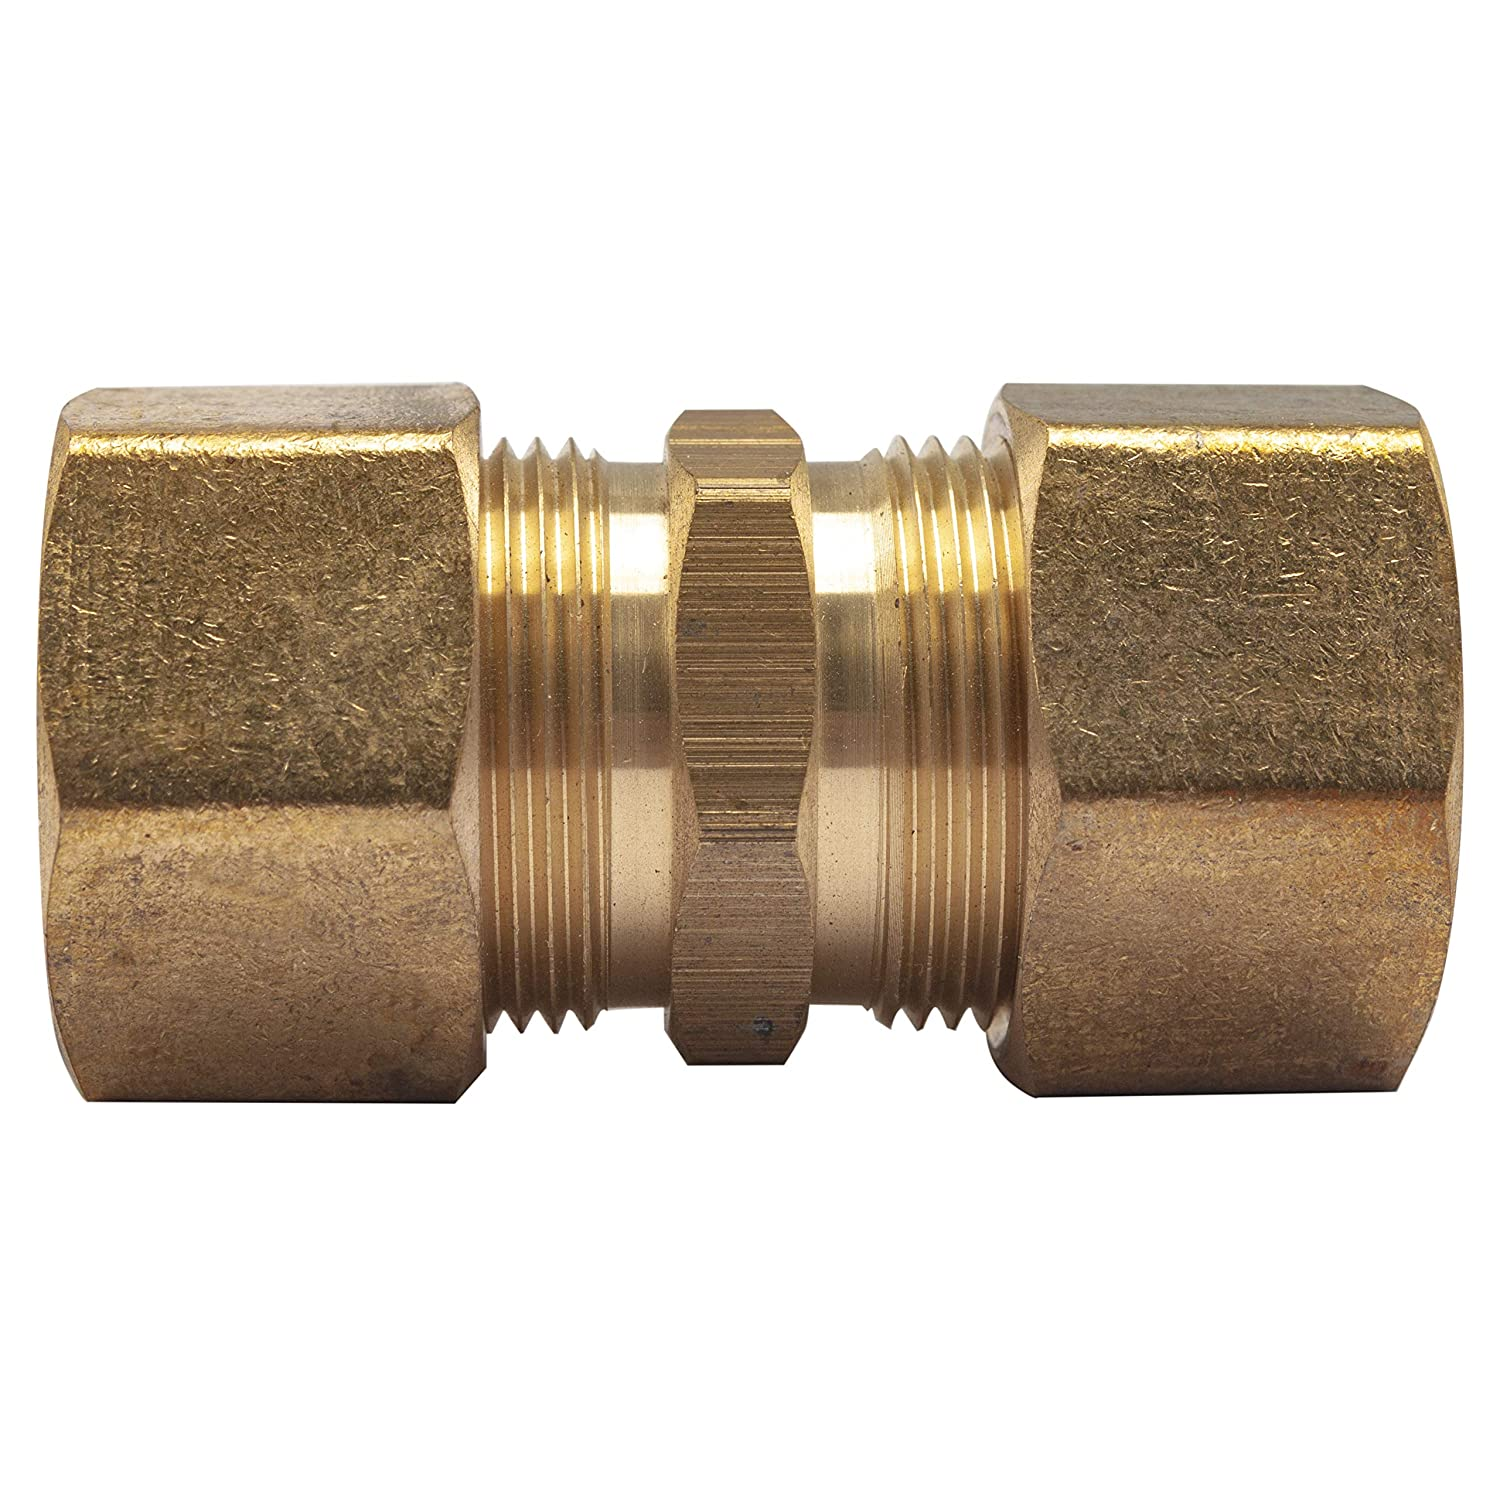 LTWFITTING 3/4-Inch OD Compression Union,Brass Compression Fitting(Pack of 3)